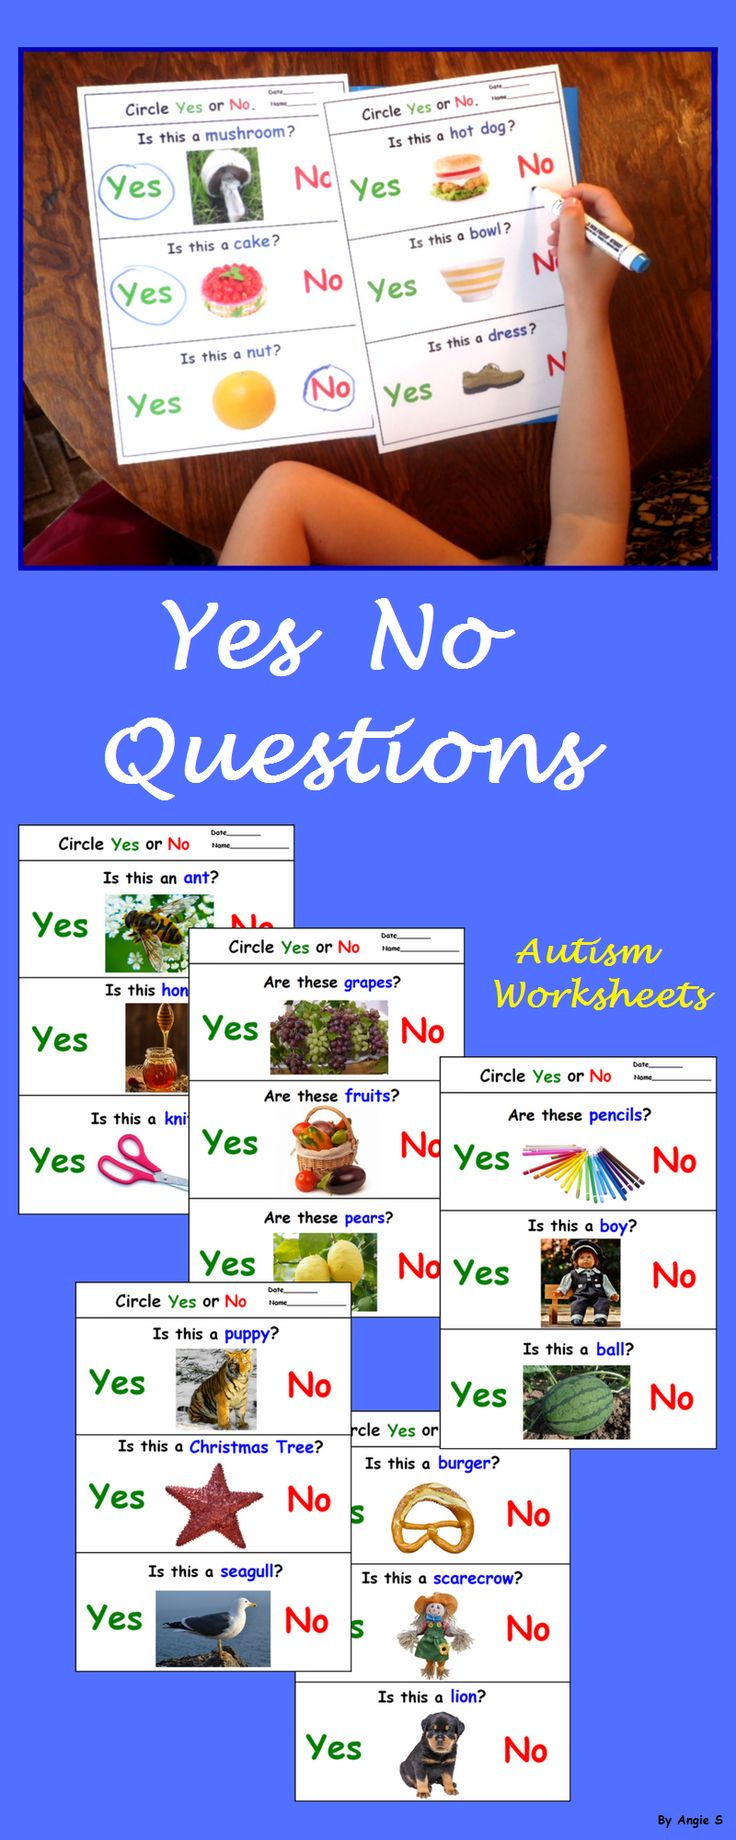 Yes/No Questions - Autism and Special Education Worksheets For more resources follow https://www.pinterest.com/angelajuvic/autism-special-education-resources-angie-s-tpt-sto/